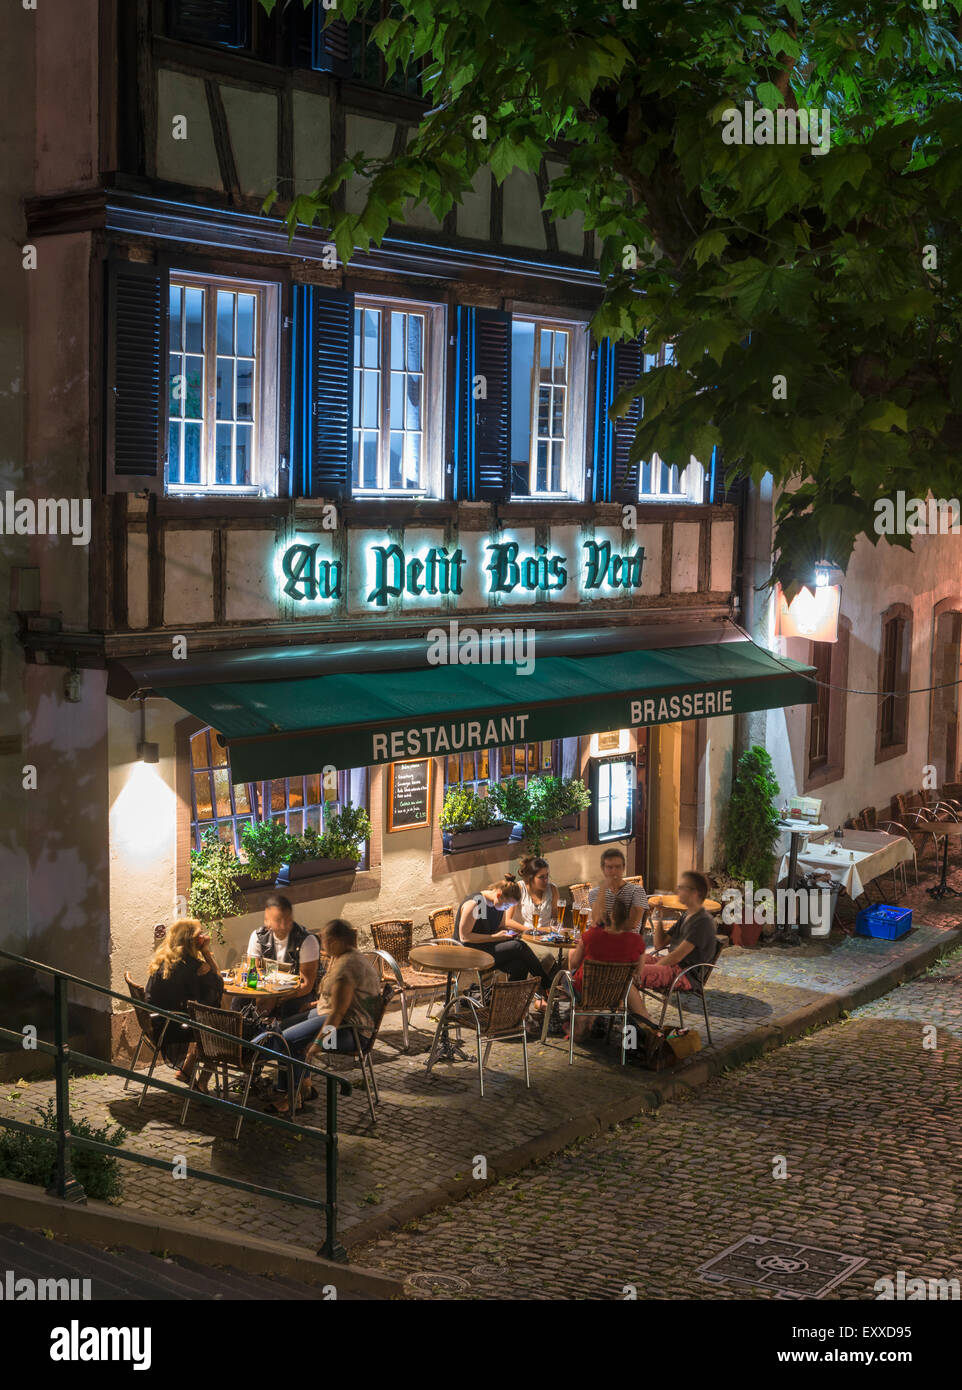 Tourists enjoying an evening drink at a cafe bar restaurant in Petite France old town district, Strasbourg, France, - Stock Image